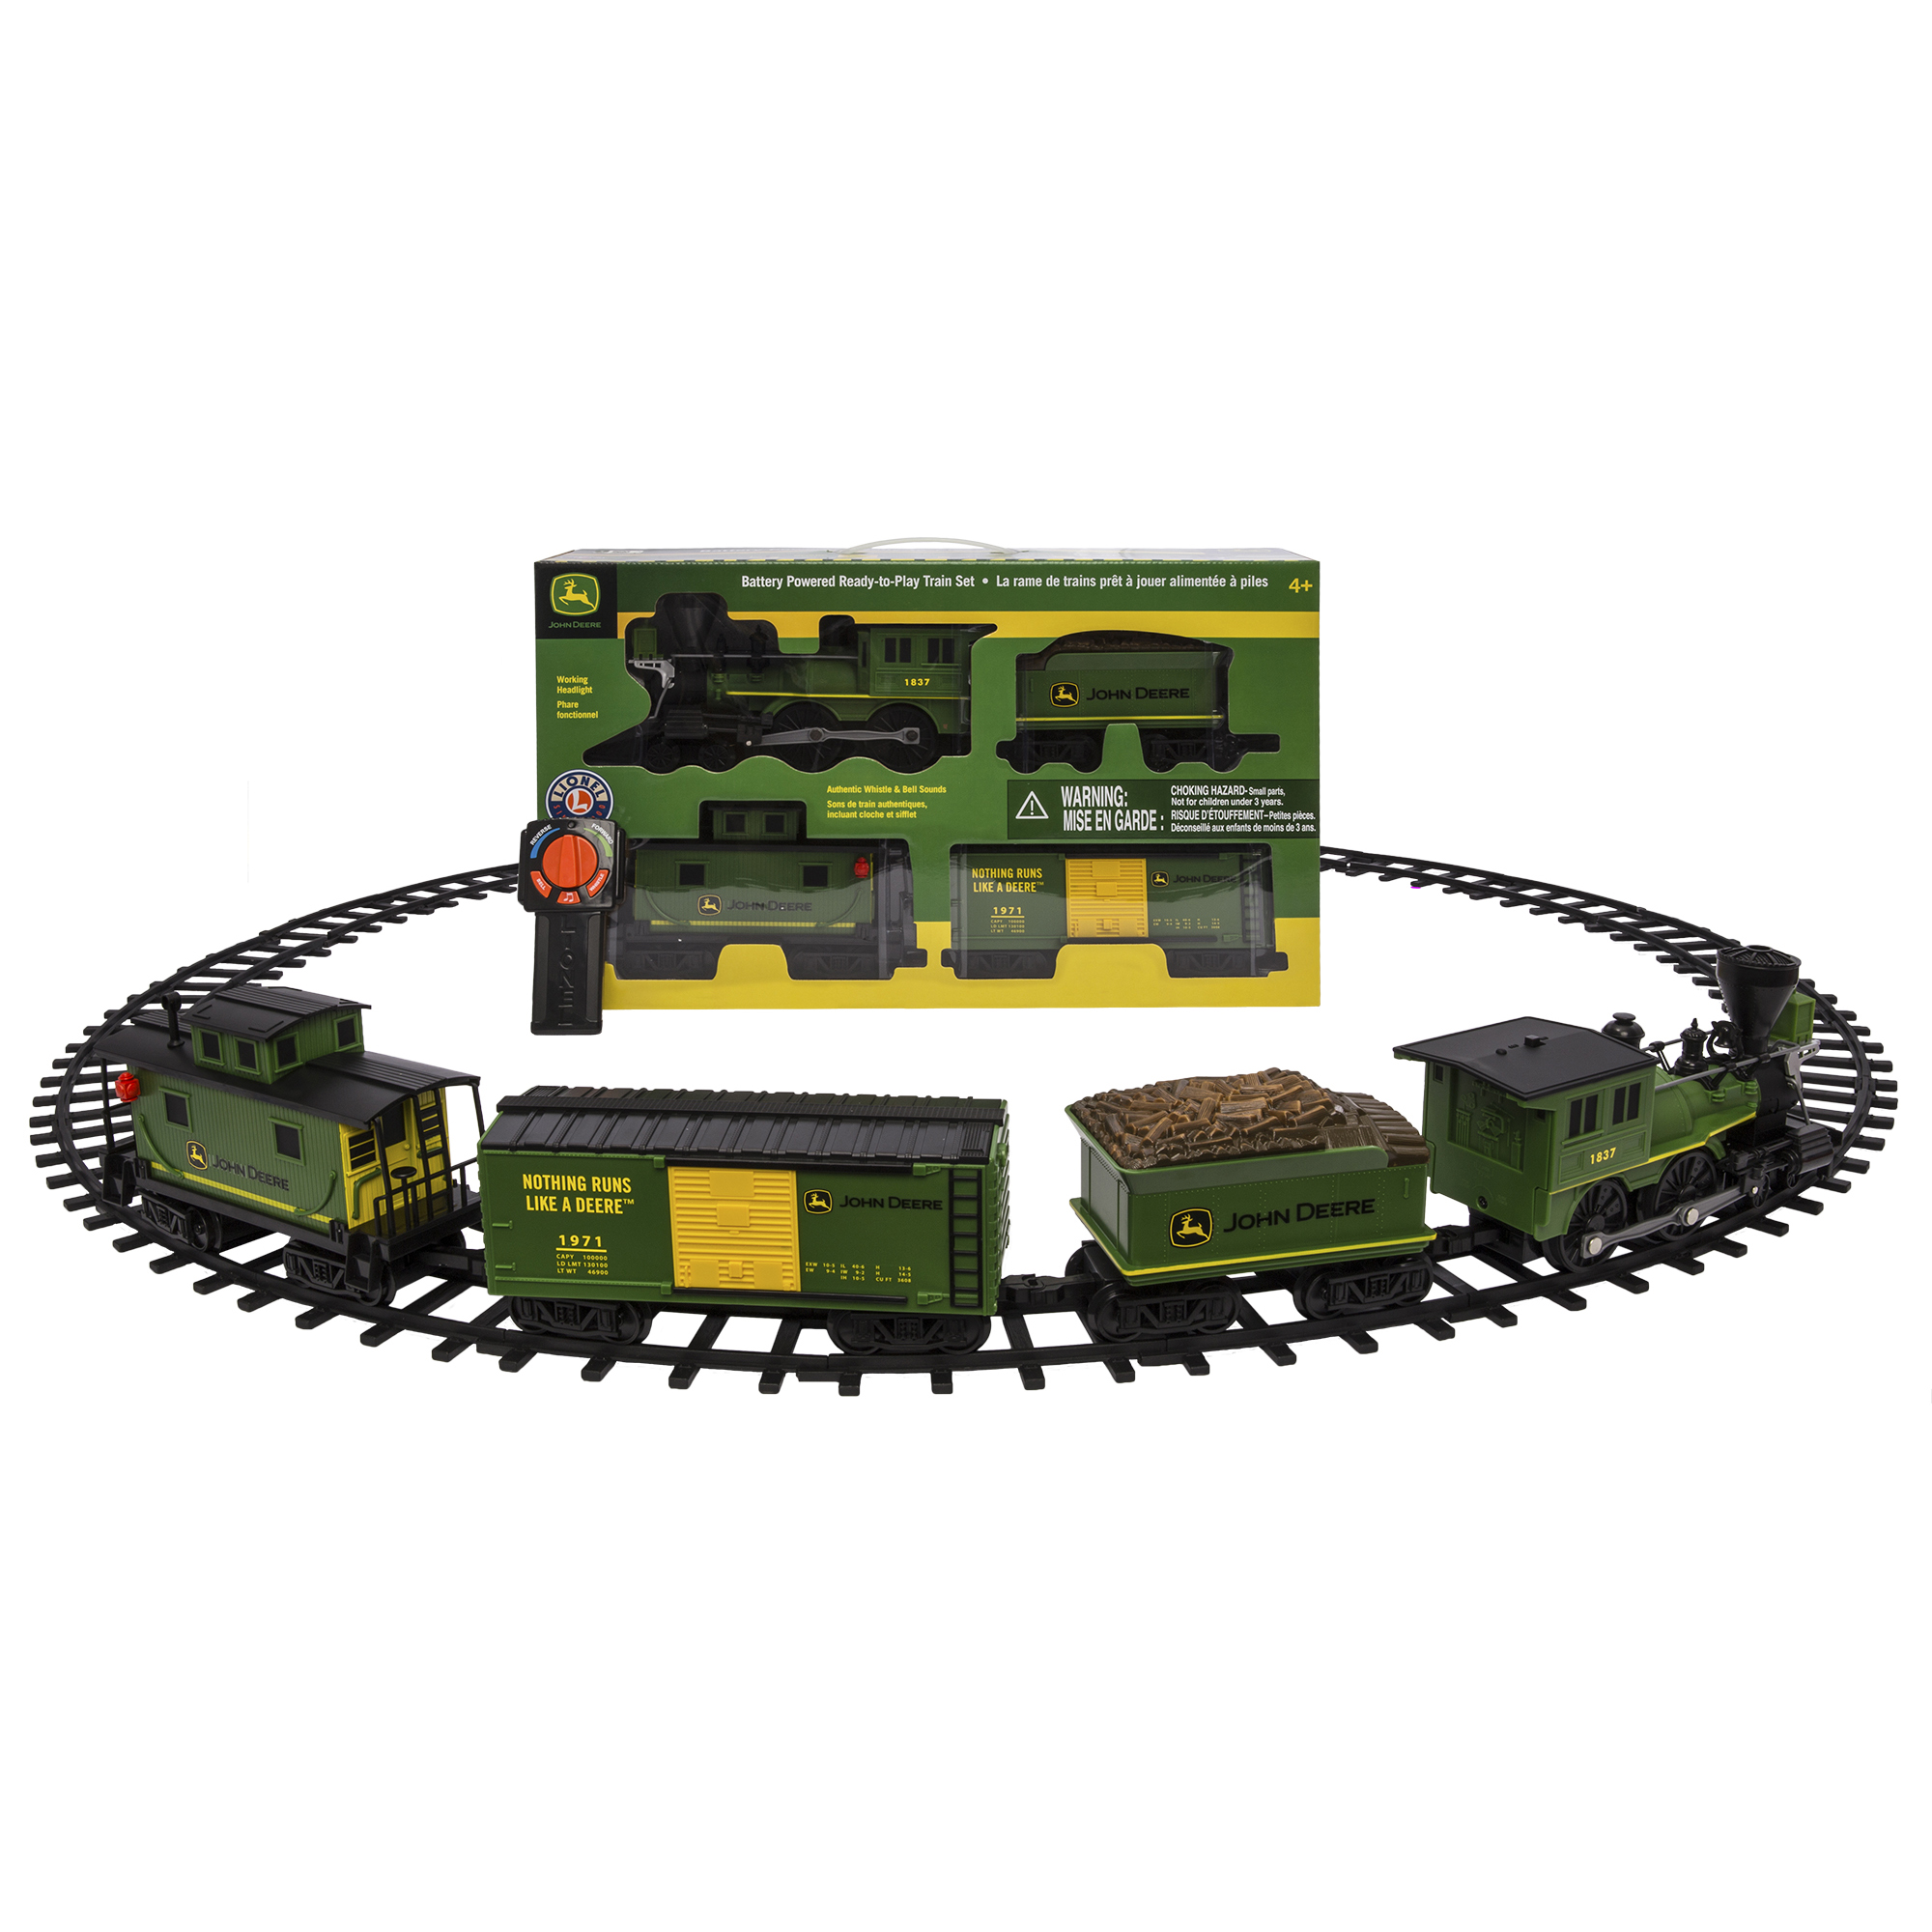 Lionel Trains John Deere Seasonal Ready to Play Set